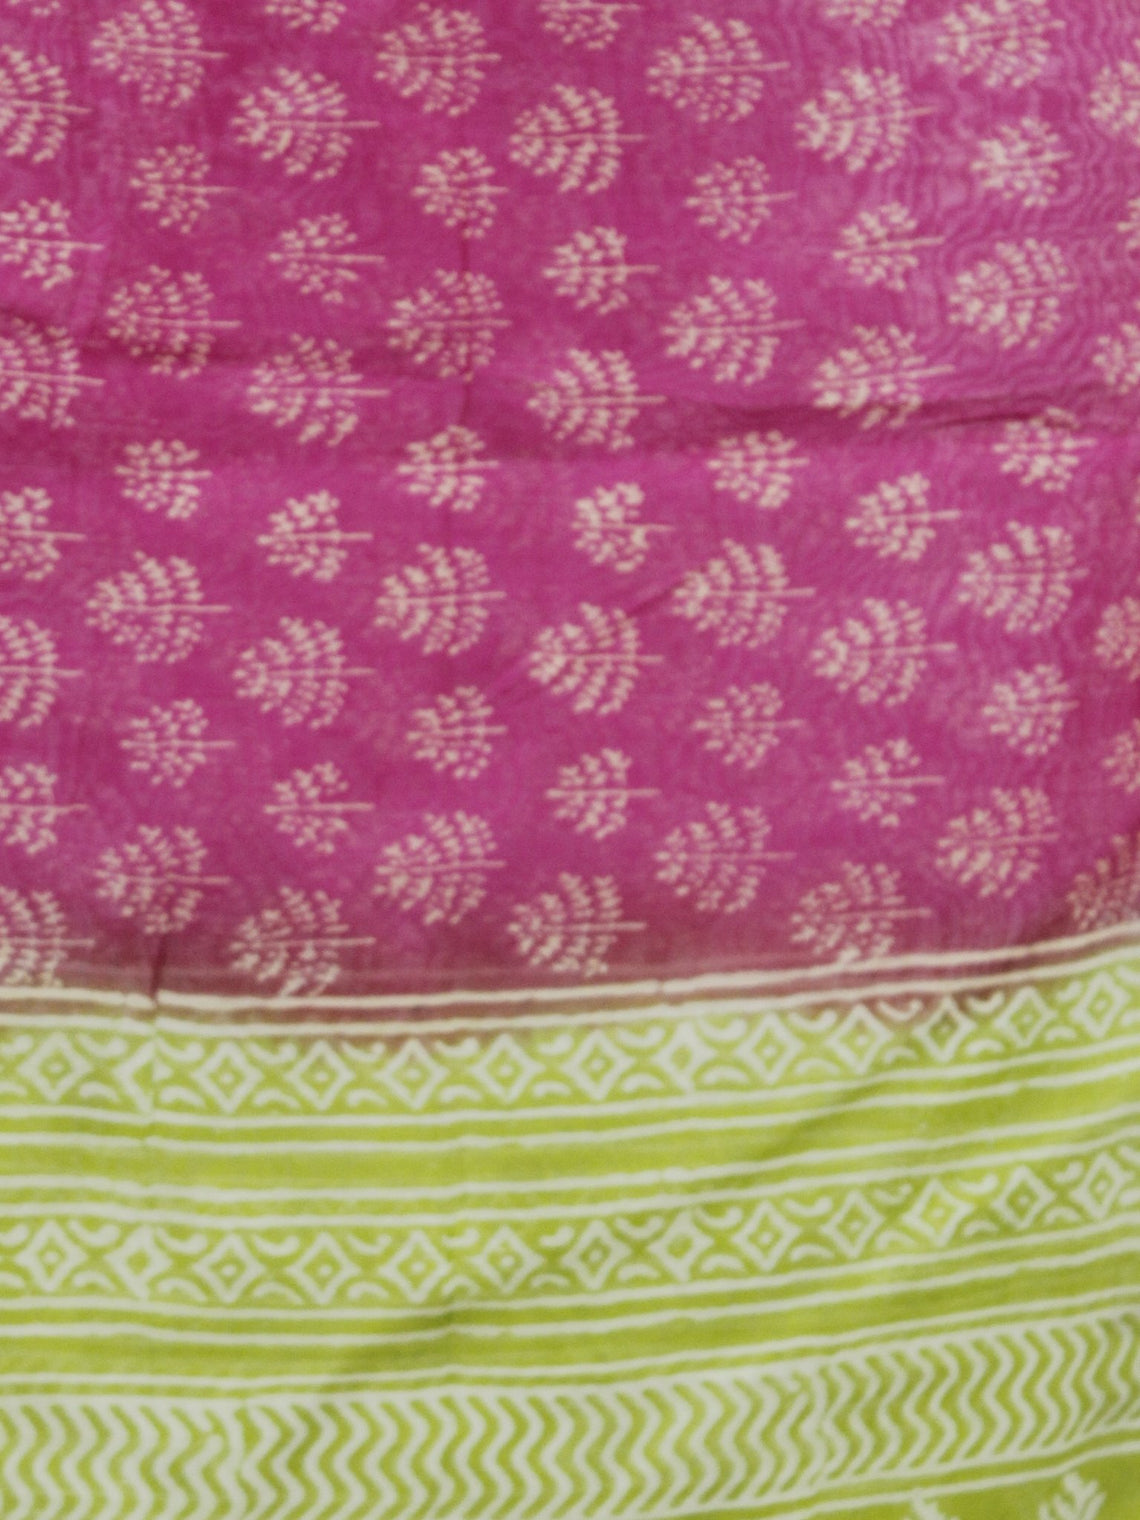 Pink Green Ivory Chanderi Hand Black Printed & Hand Painted Dupatta - D04170281